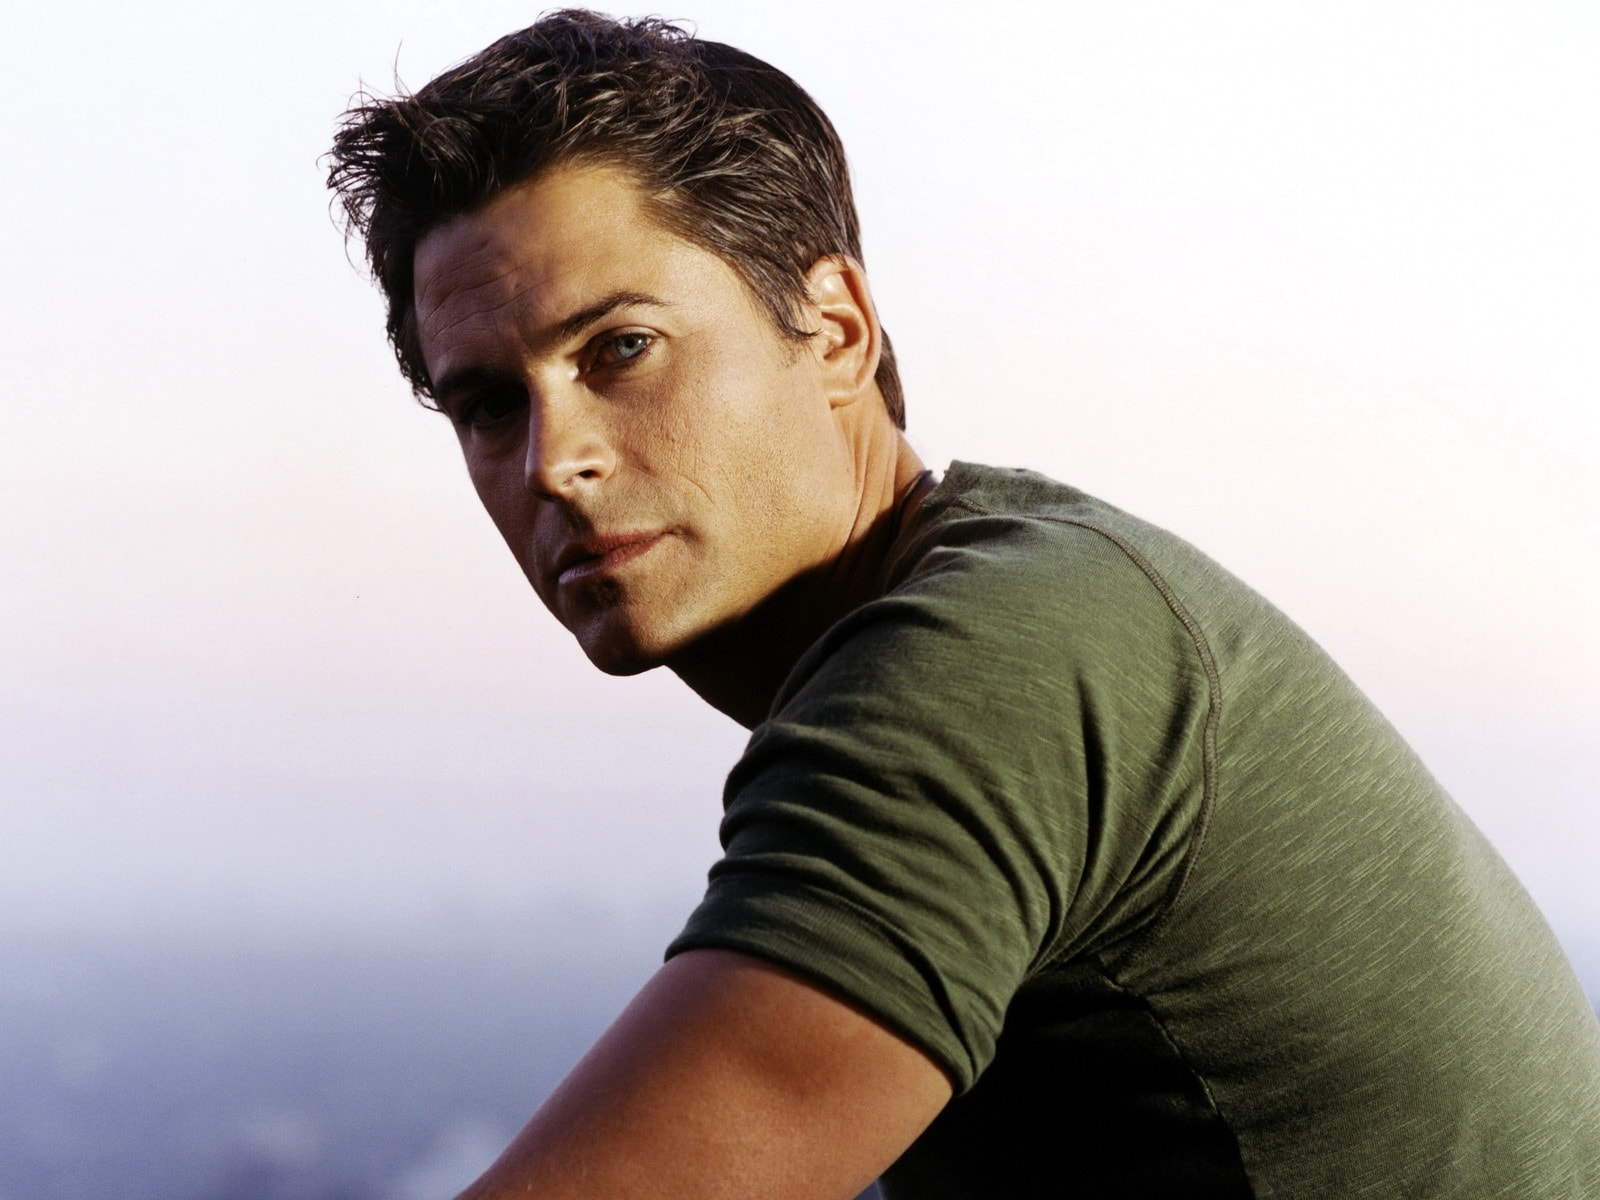 Rob Lowe Widescreen